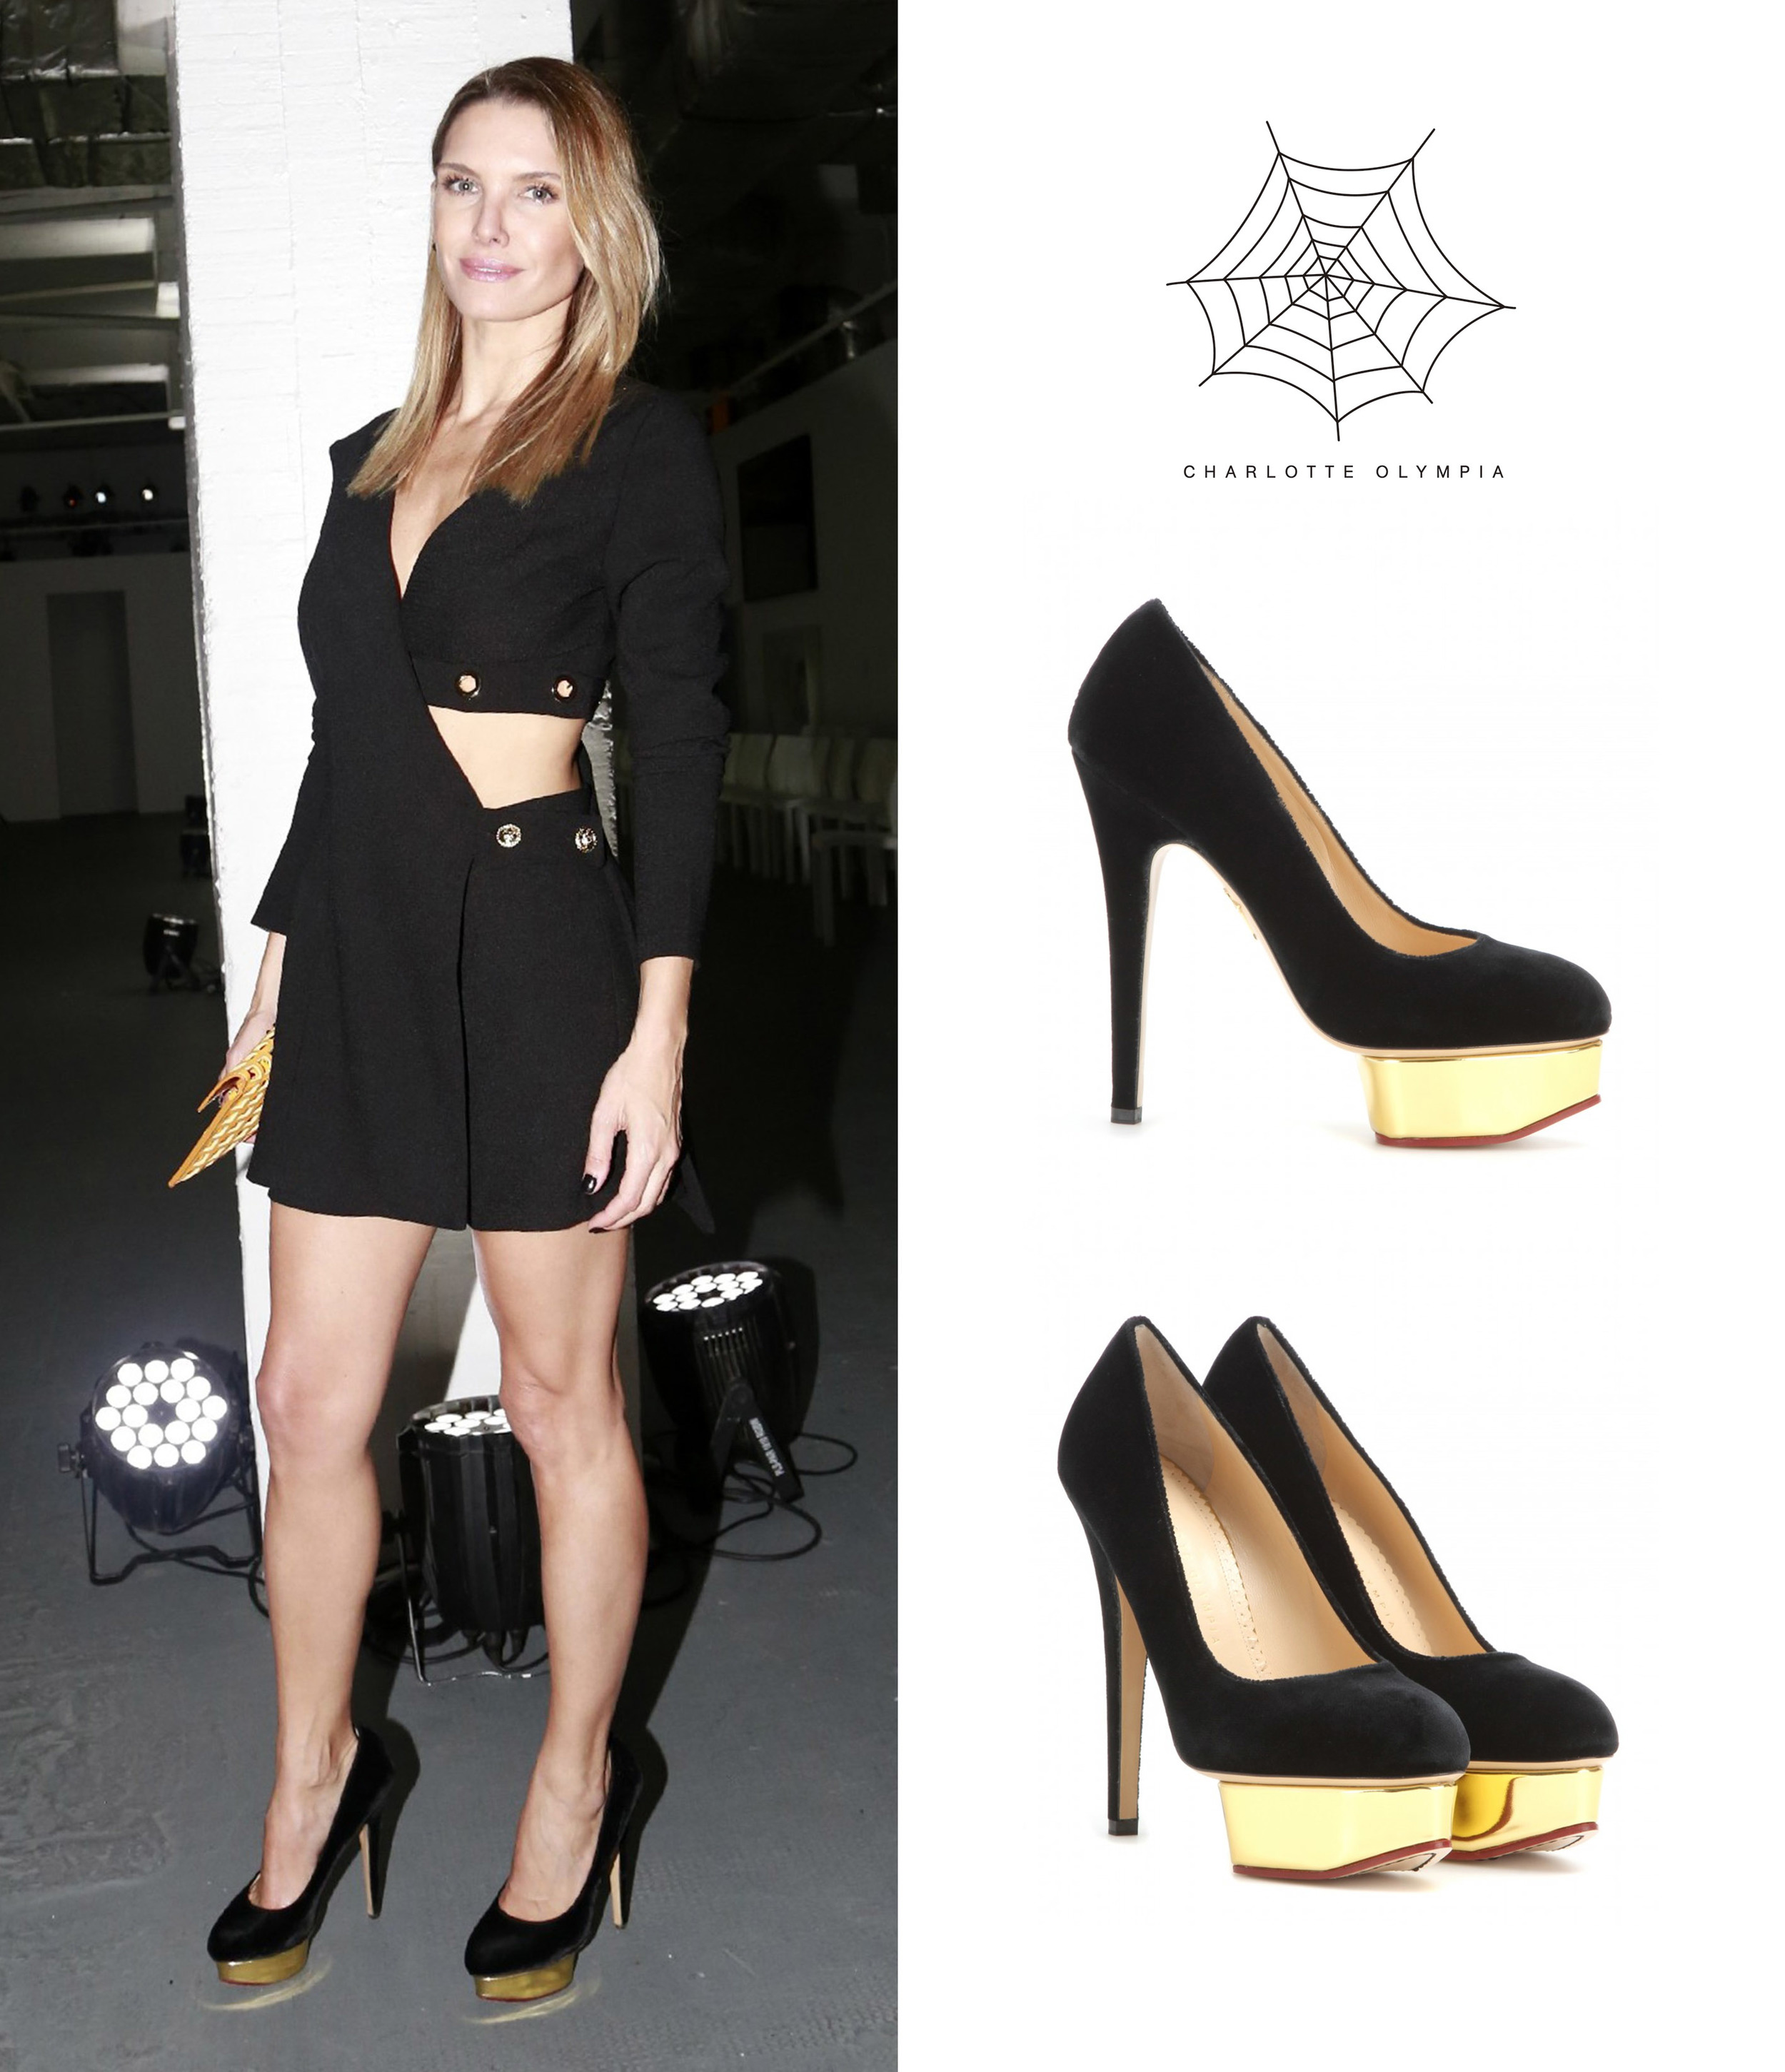 Sofia-Zamolo-Javier-Saiach-Laurencio-Adot-Fall-Invierno-2016-Zapatos-Dolly-Black-Velvet-Pumps-Shoes.jpg